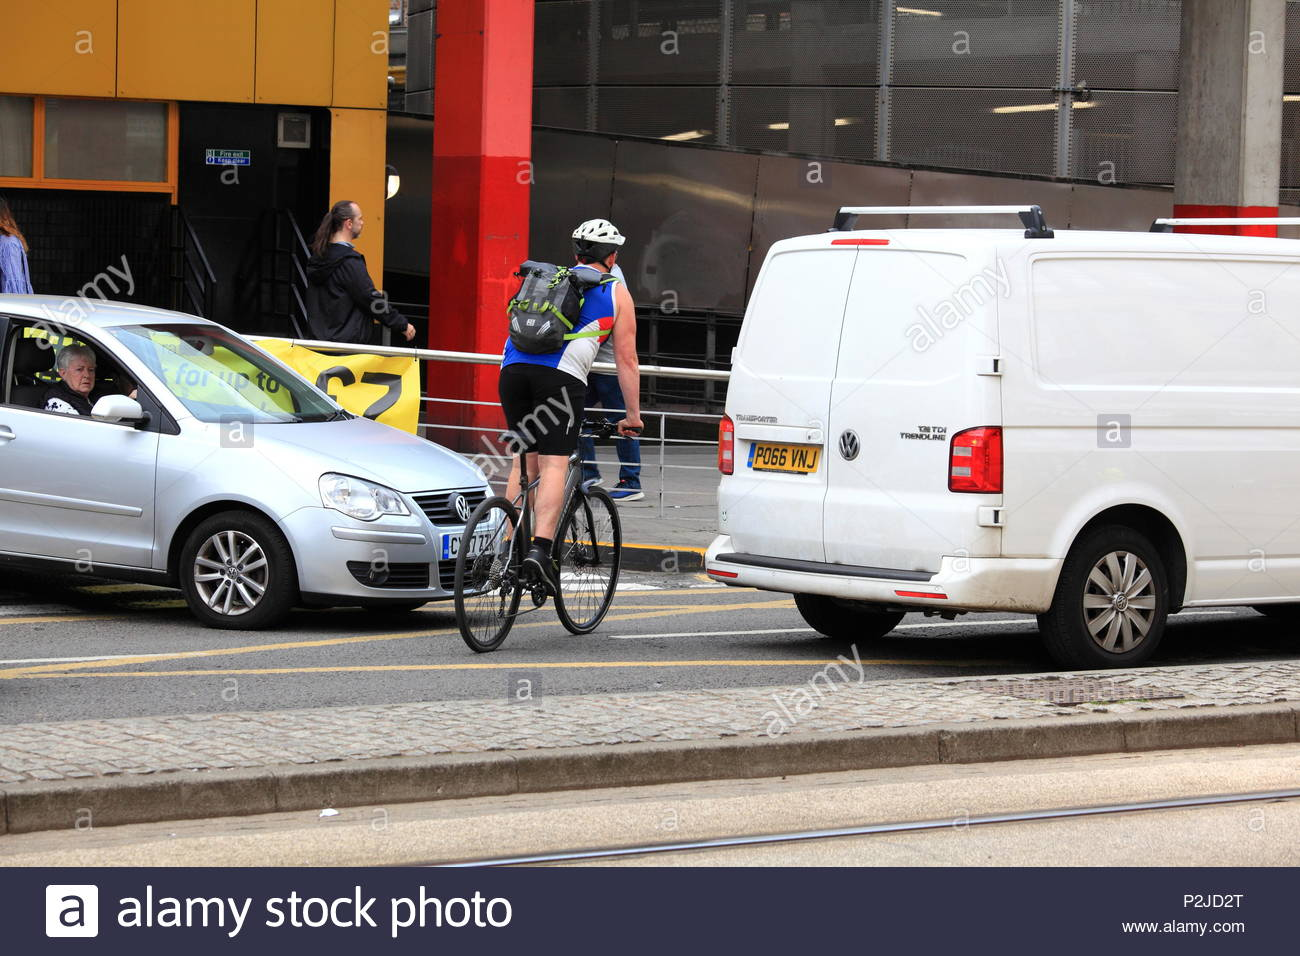 A Male cyclist weaves through moving traffic at Manchester City Centre, Manchester UK Summer June 2018 - Stock Image